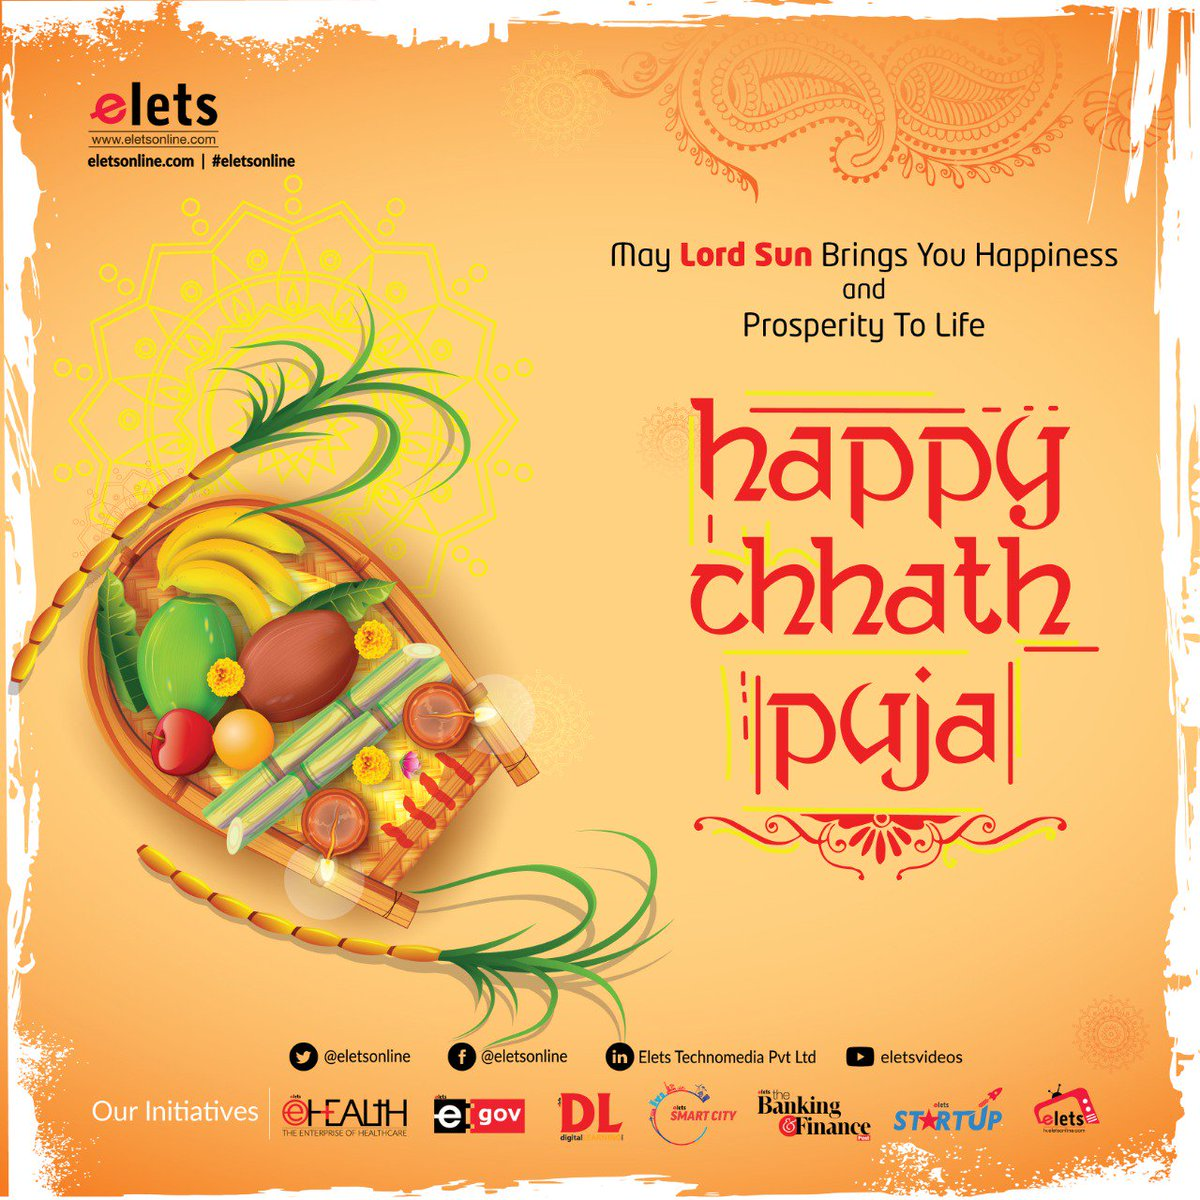 test Twitter Media - May Lord Sun brings happiness and prosperity to life ... Elets wishes Happy Chhath Puja to all!!!  #education #Chhathpuja  @eletsonline @chandananand26 @dubeyashutosh79 https://t.co/rS18YhDulG